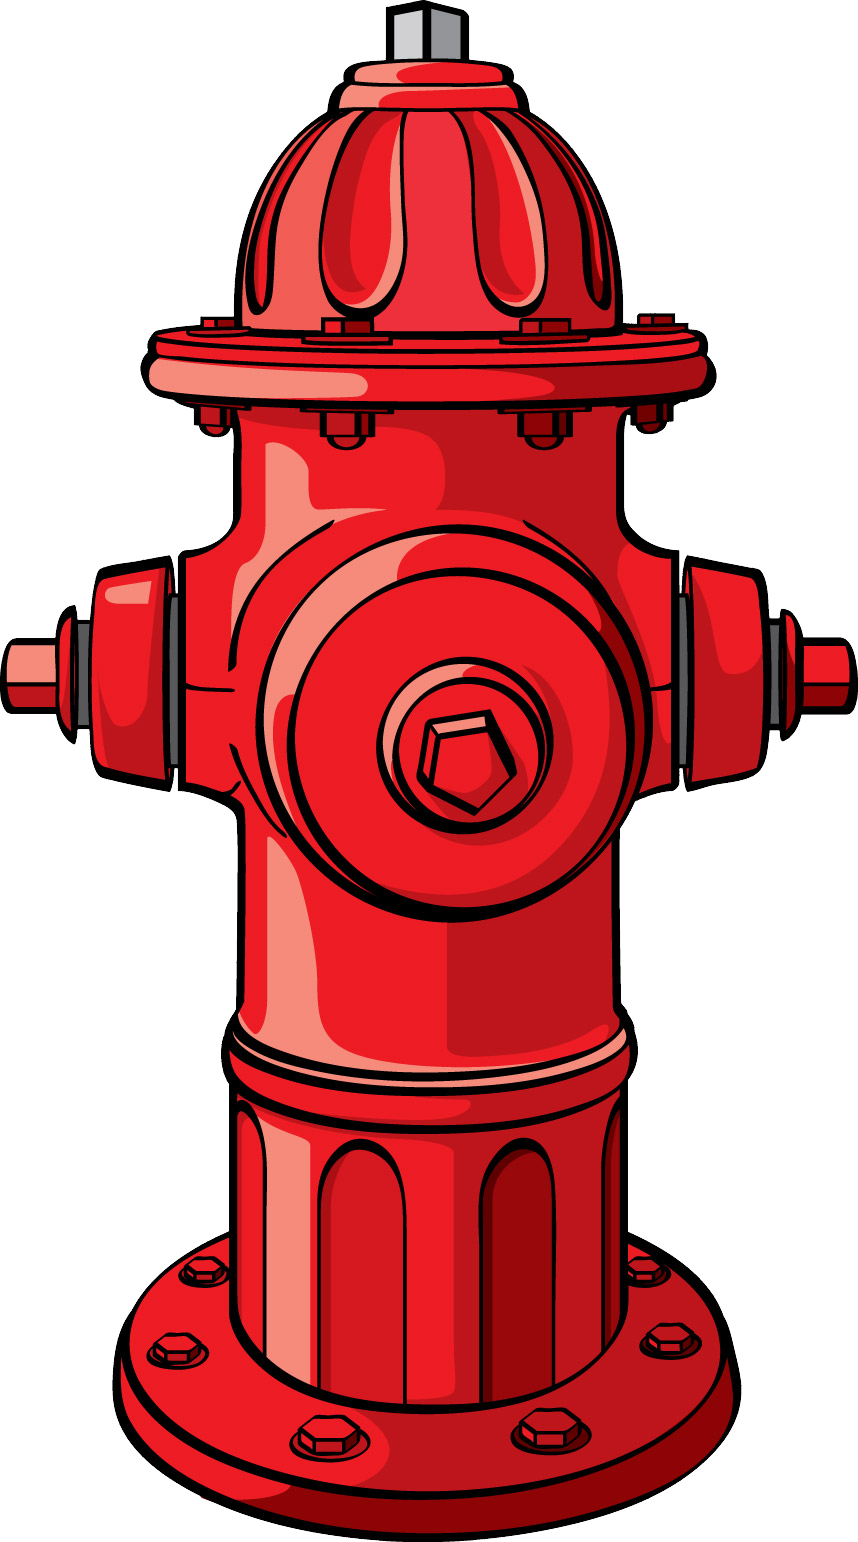 Fire Hydrant Png Free - Fire Hydrant PNG Image - PurePNG | Free transparent CC0 PNG Image ...